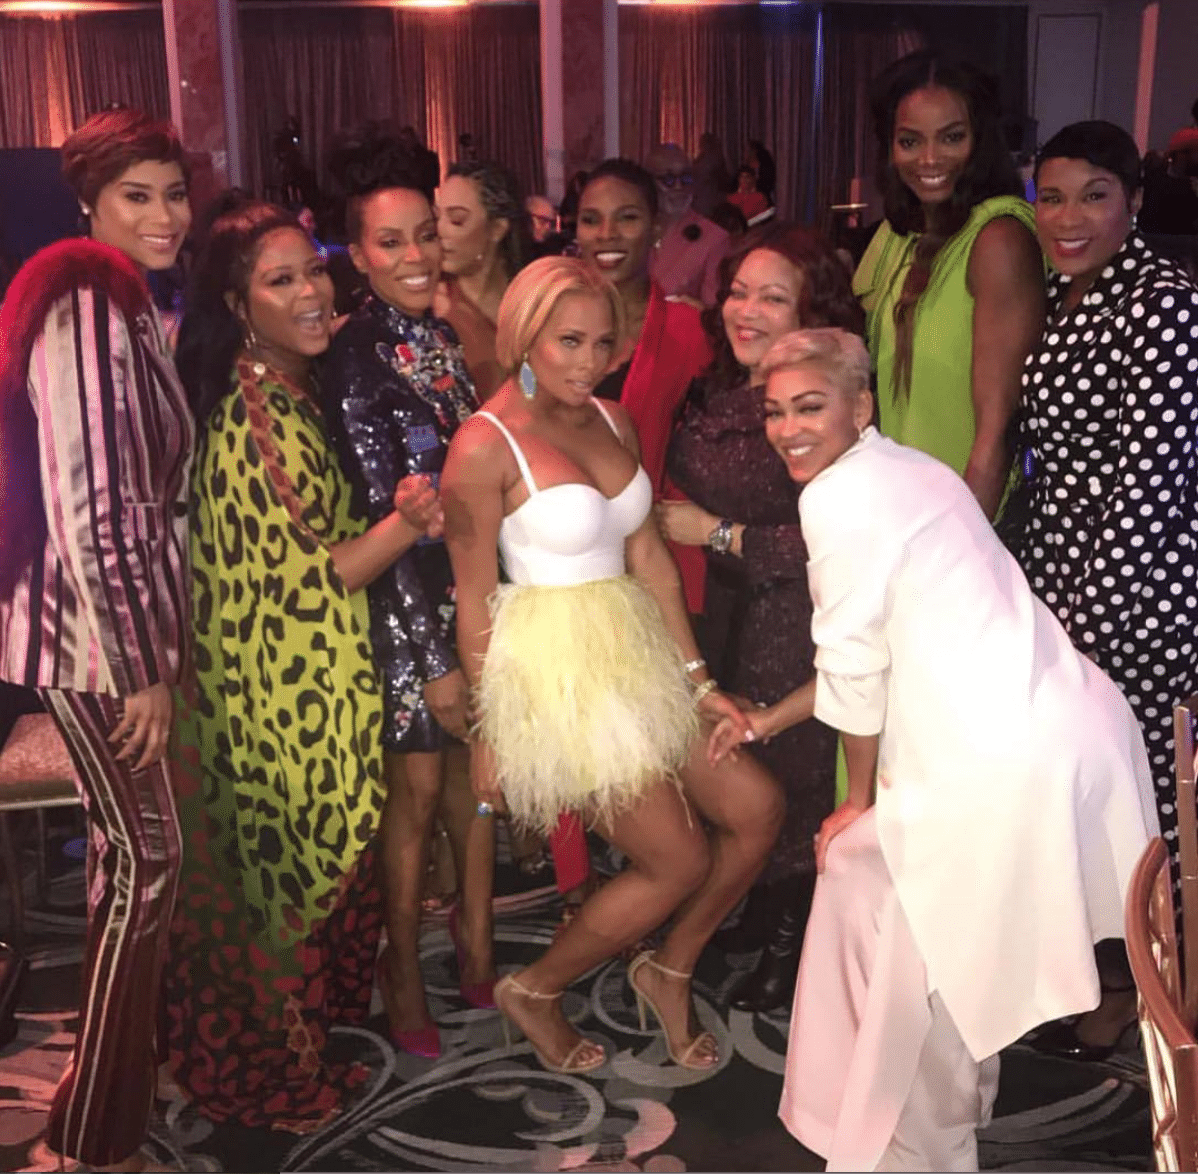 Sisterhood and Love Reigned Supreme At ESSENCE's Black Women In Hollywood Awards